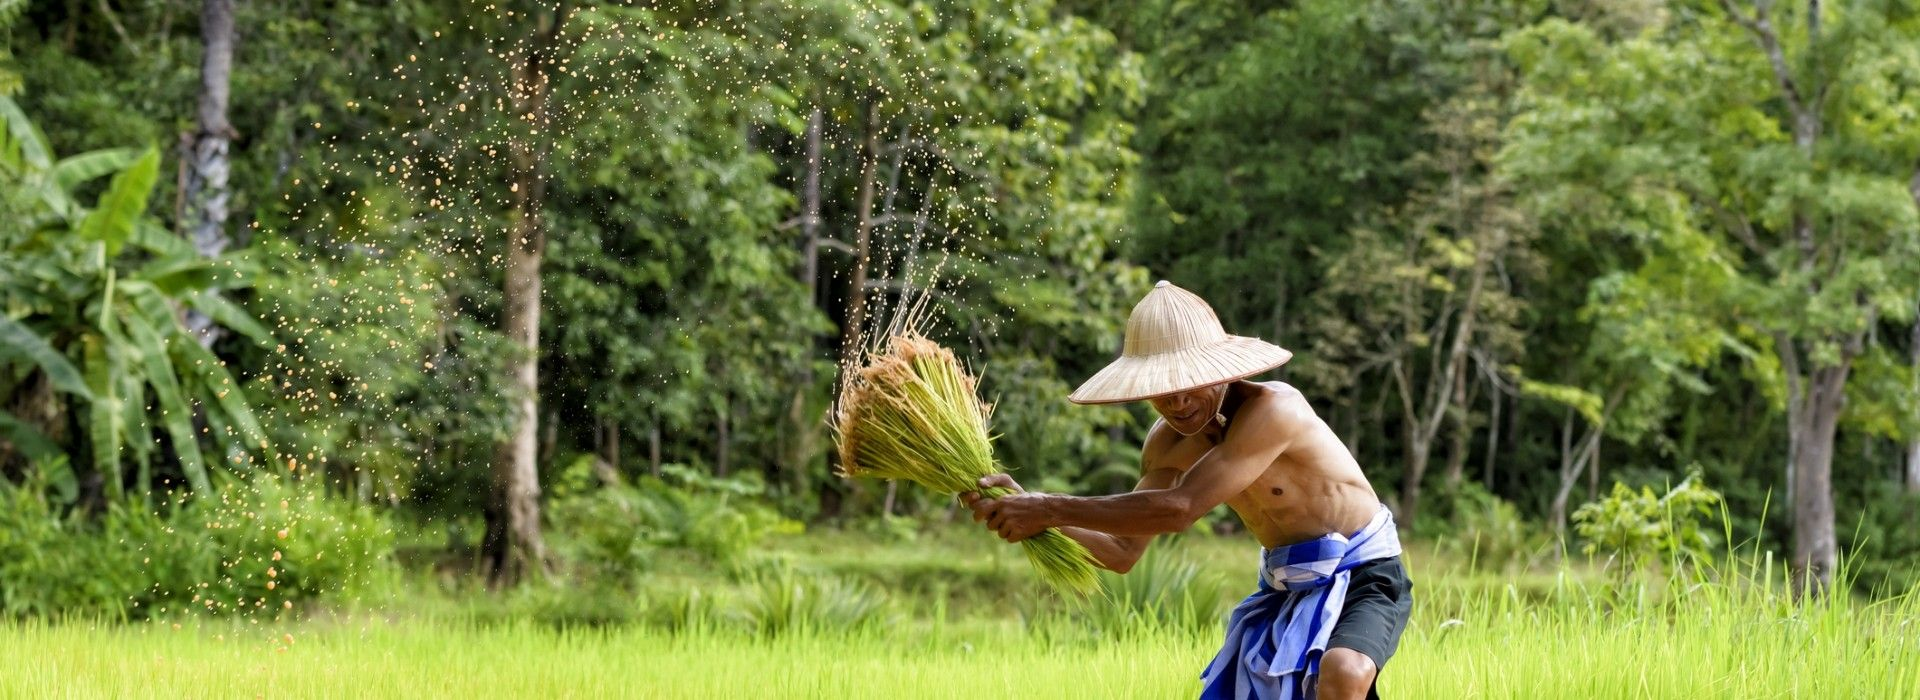 Sightseeing Tours in South East Asia